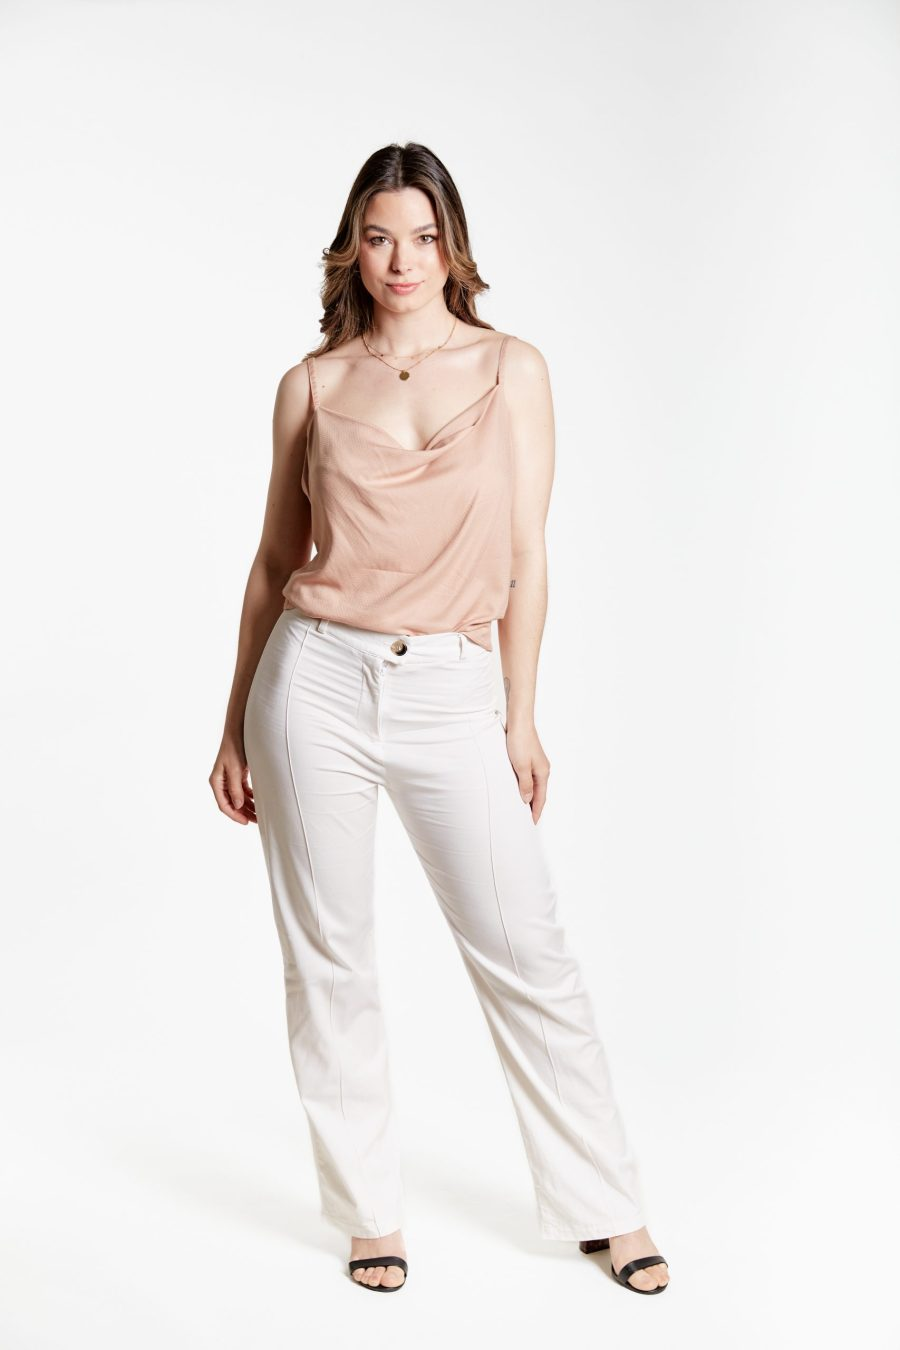 Daylight top maple outfit